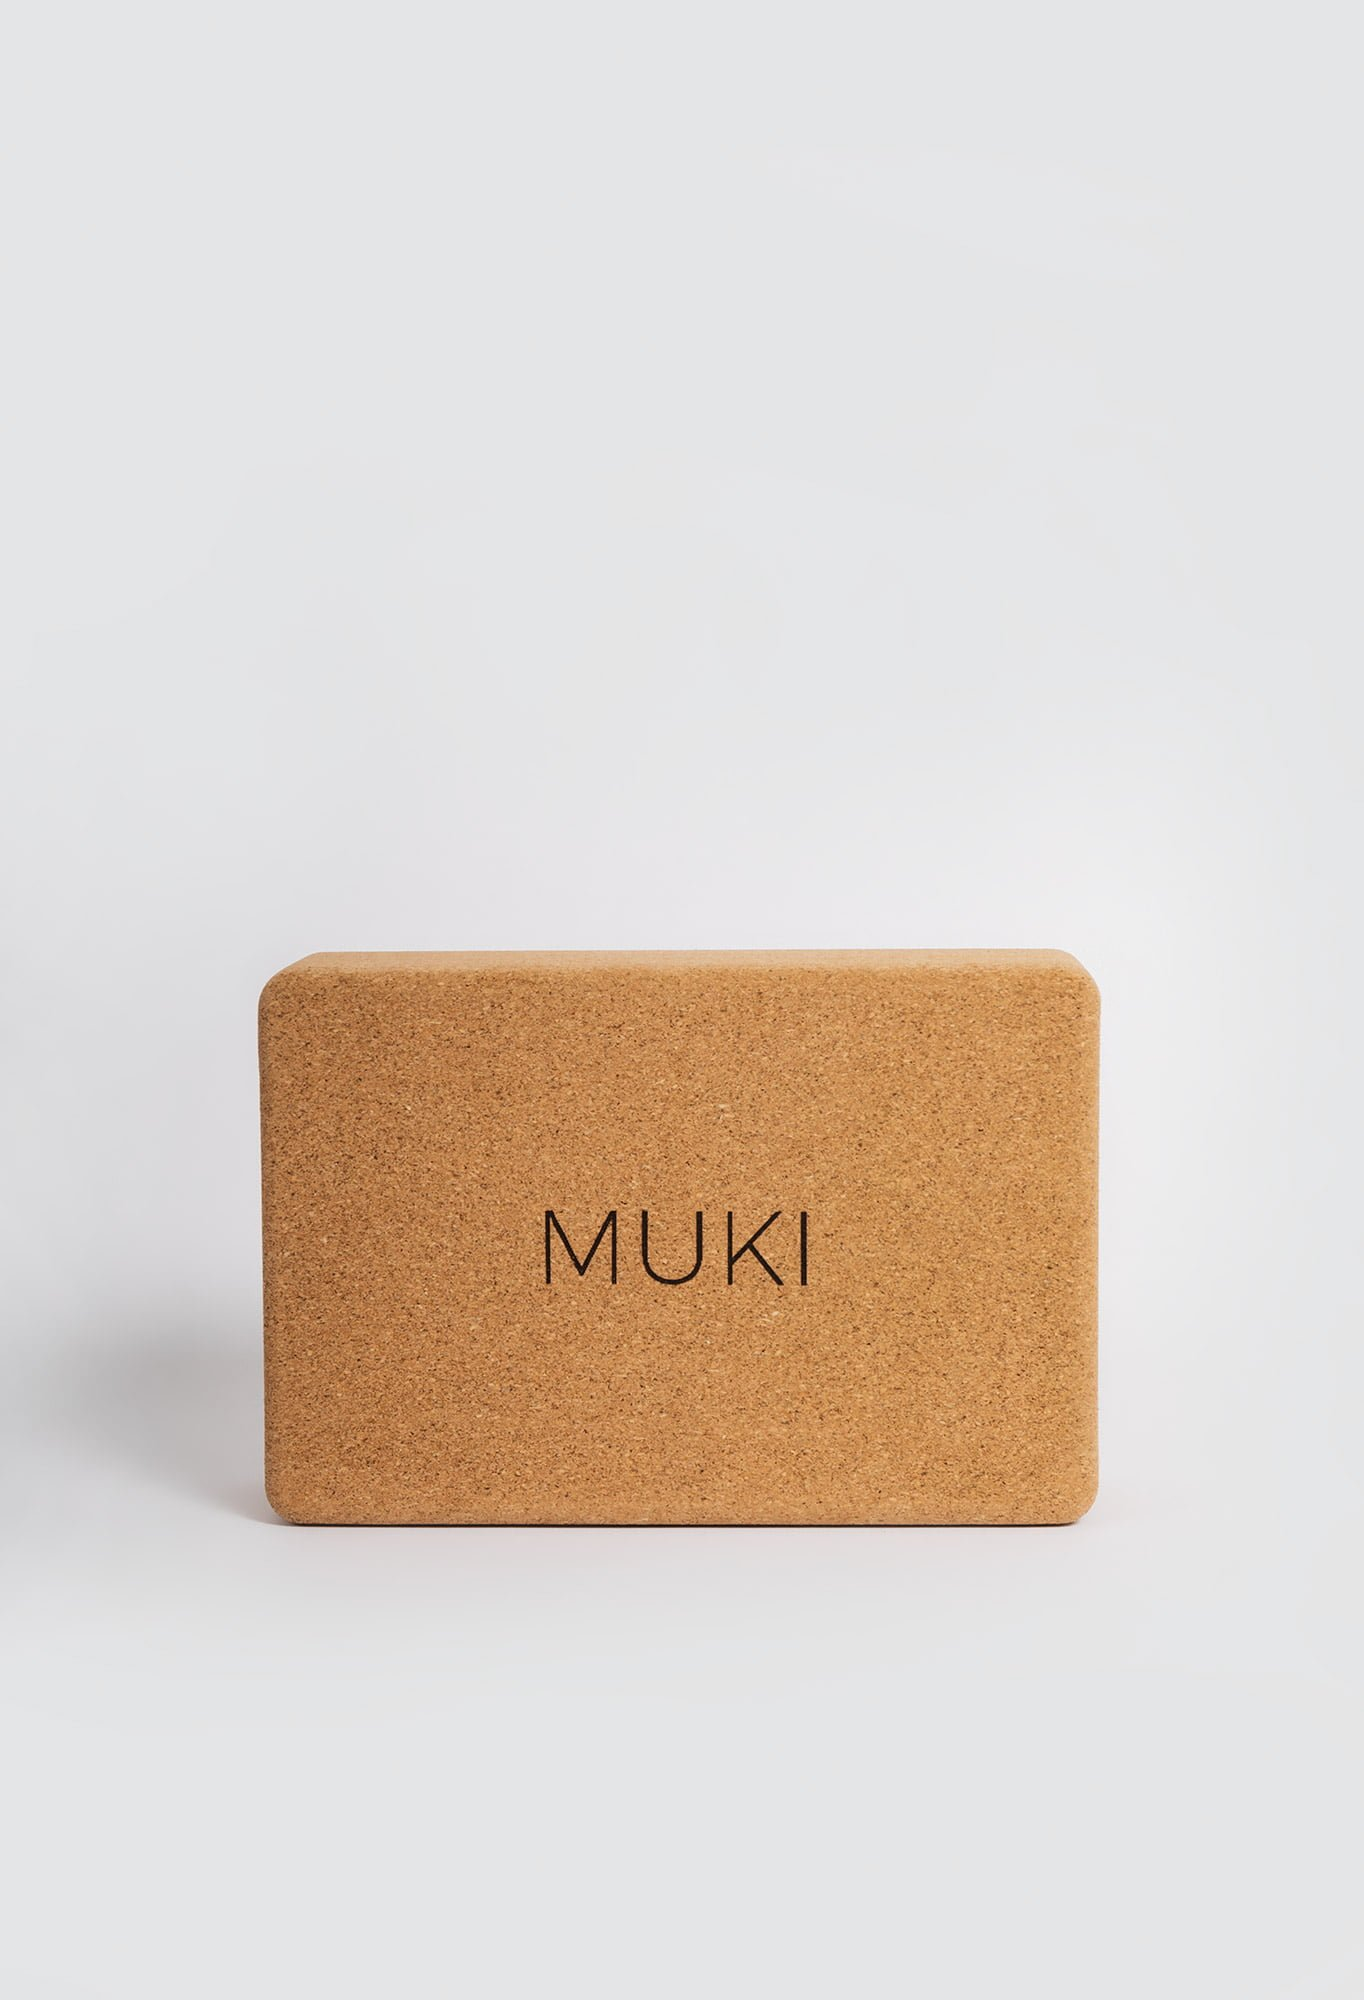 Muki cork yoga block